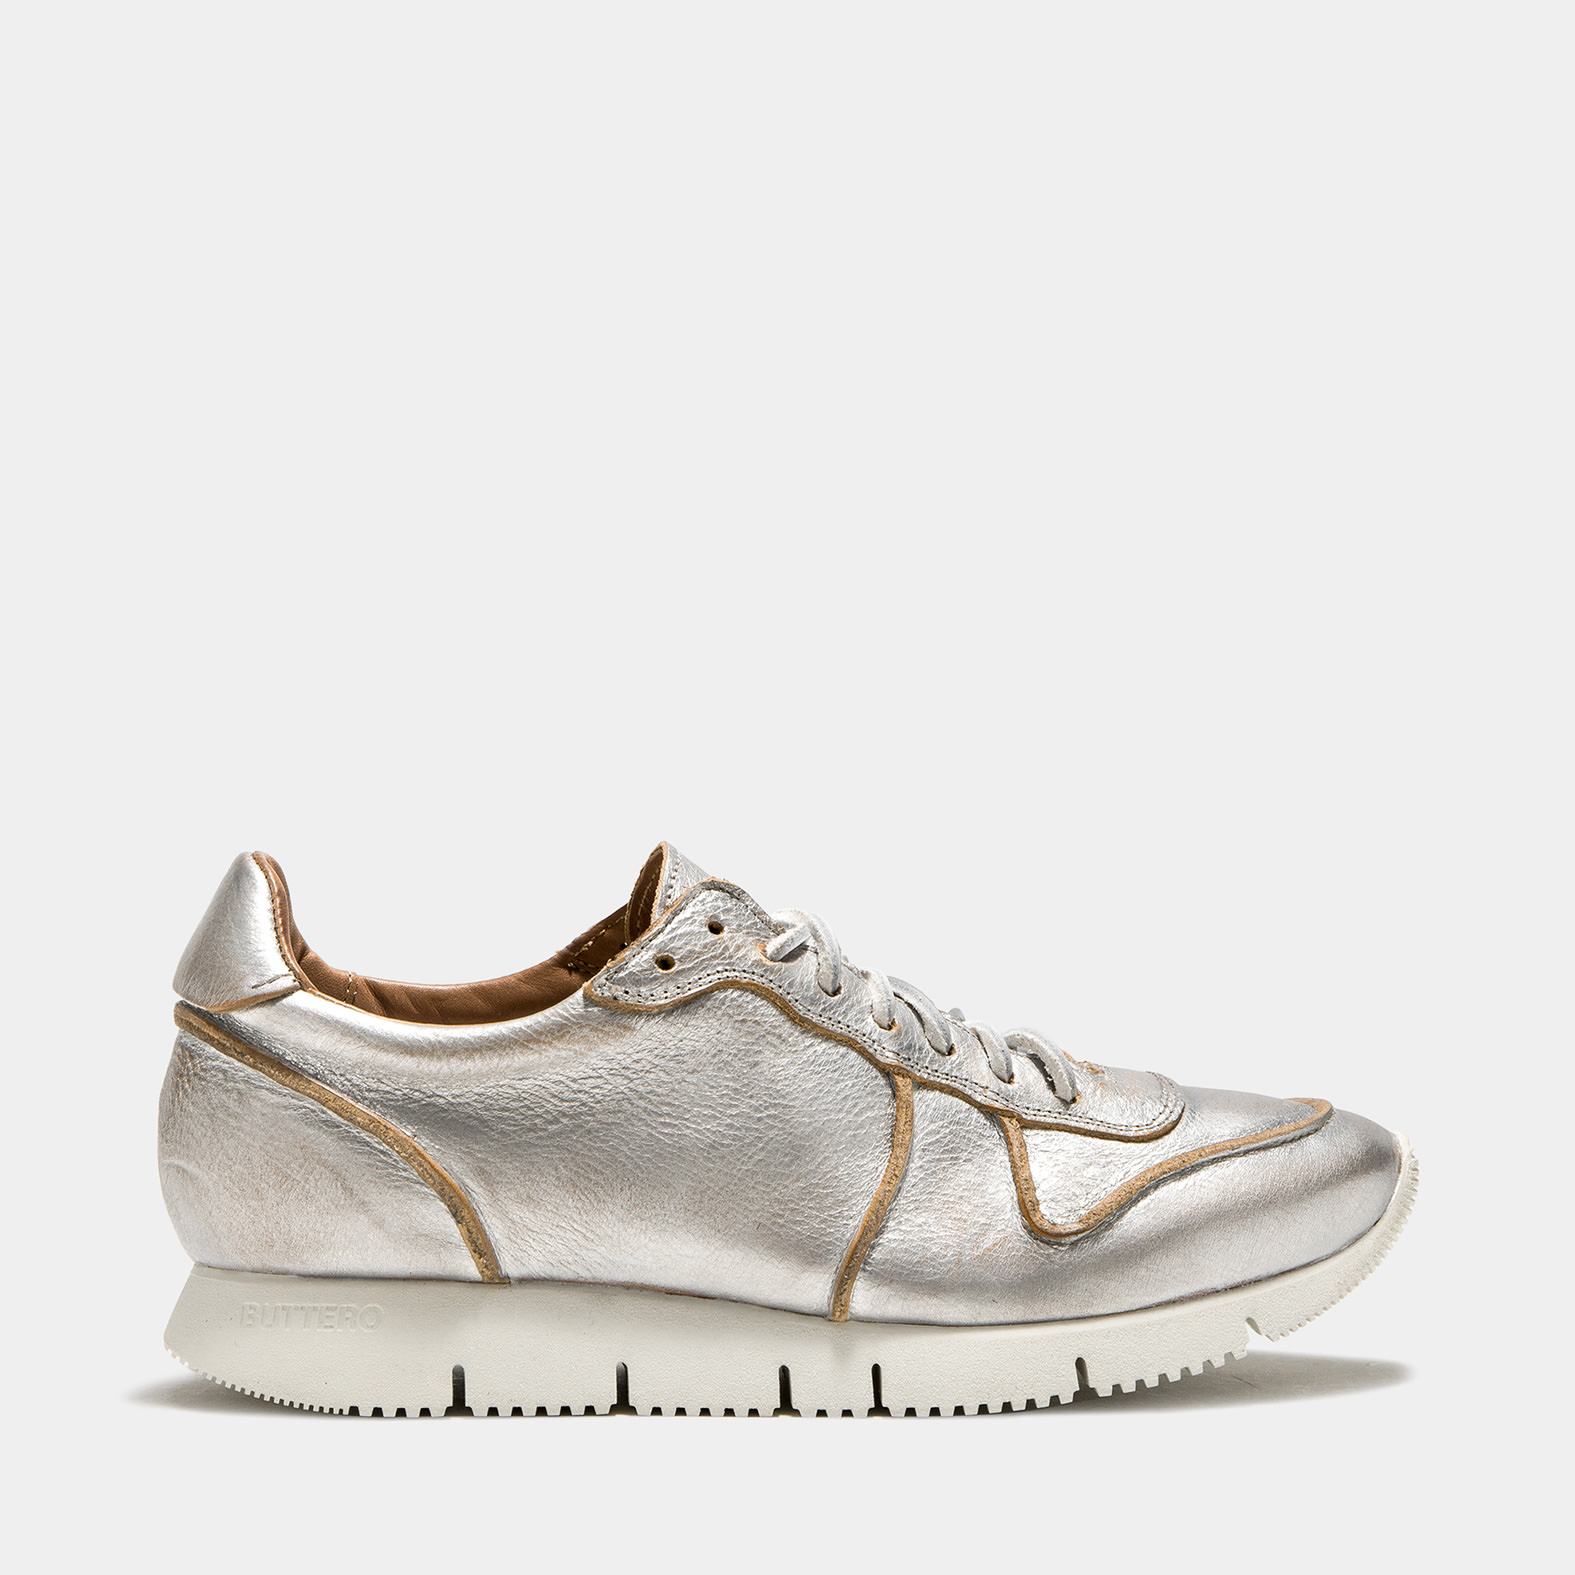 BUTTERO: CARRERA SNEAKER IN SILVER TONE LAMINATED LEATHER